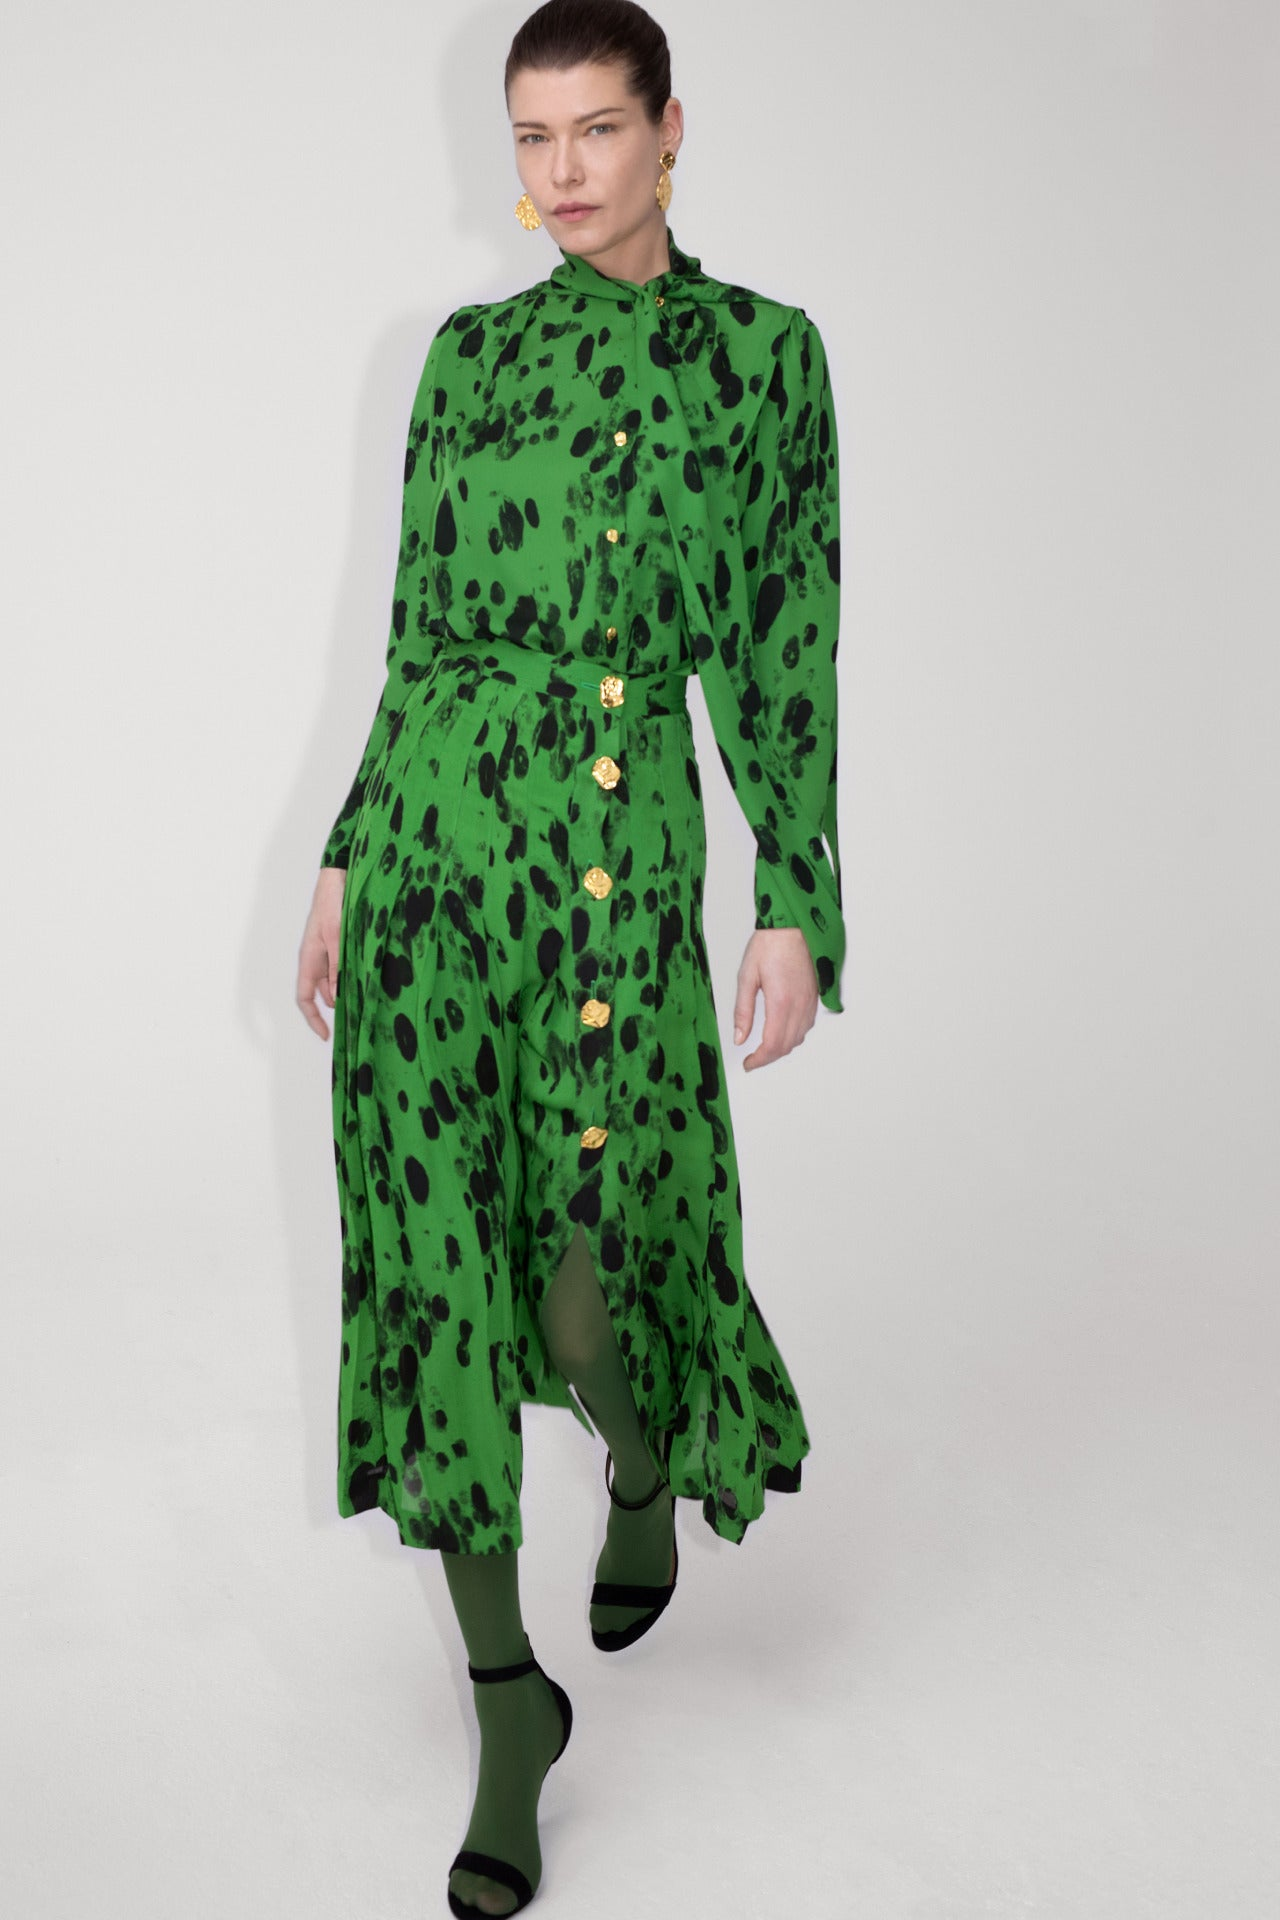 ESCADA Fall/Winter 2020 Green dalmatian skirt and blouse with golden hammered buttons